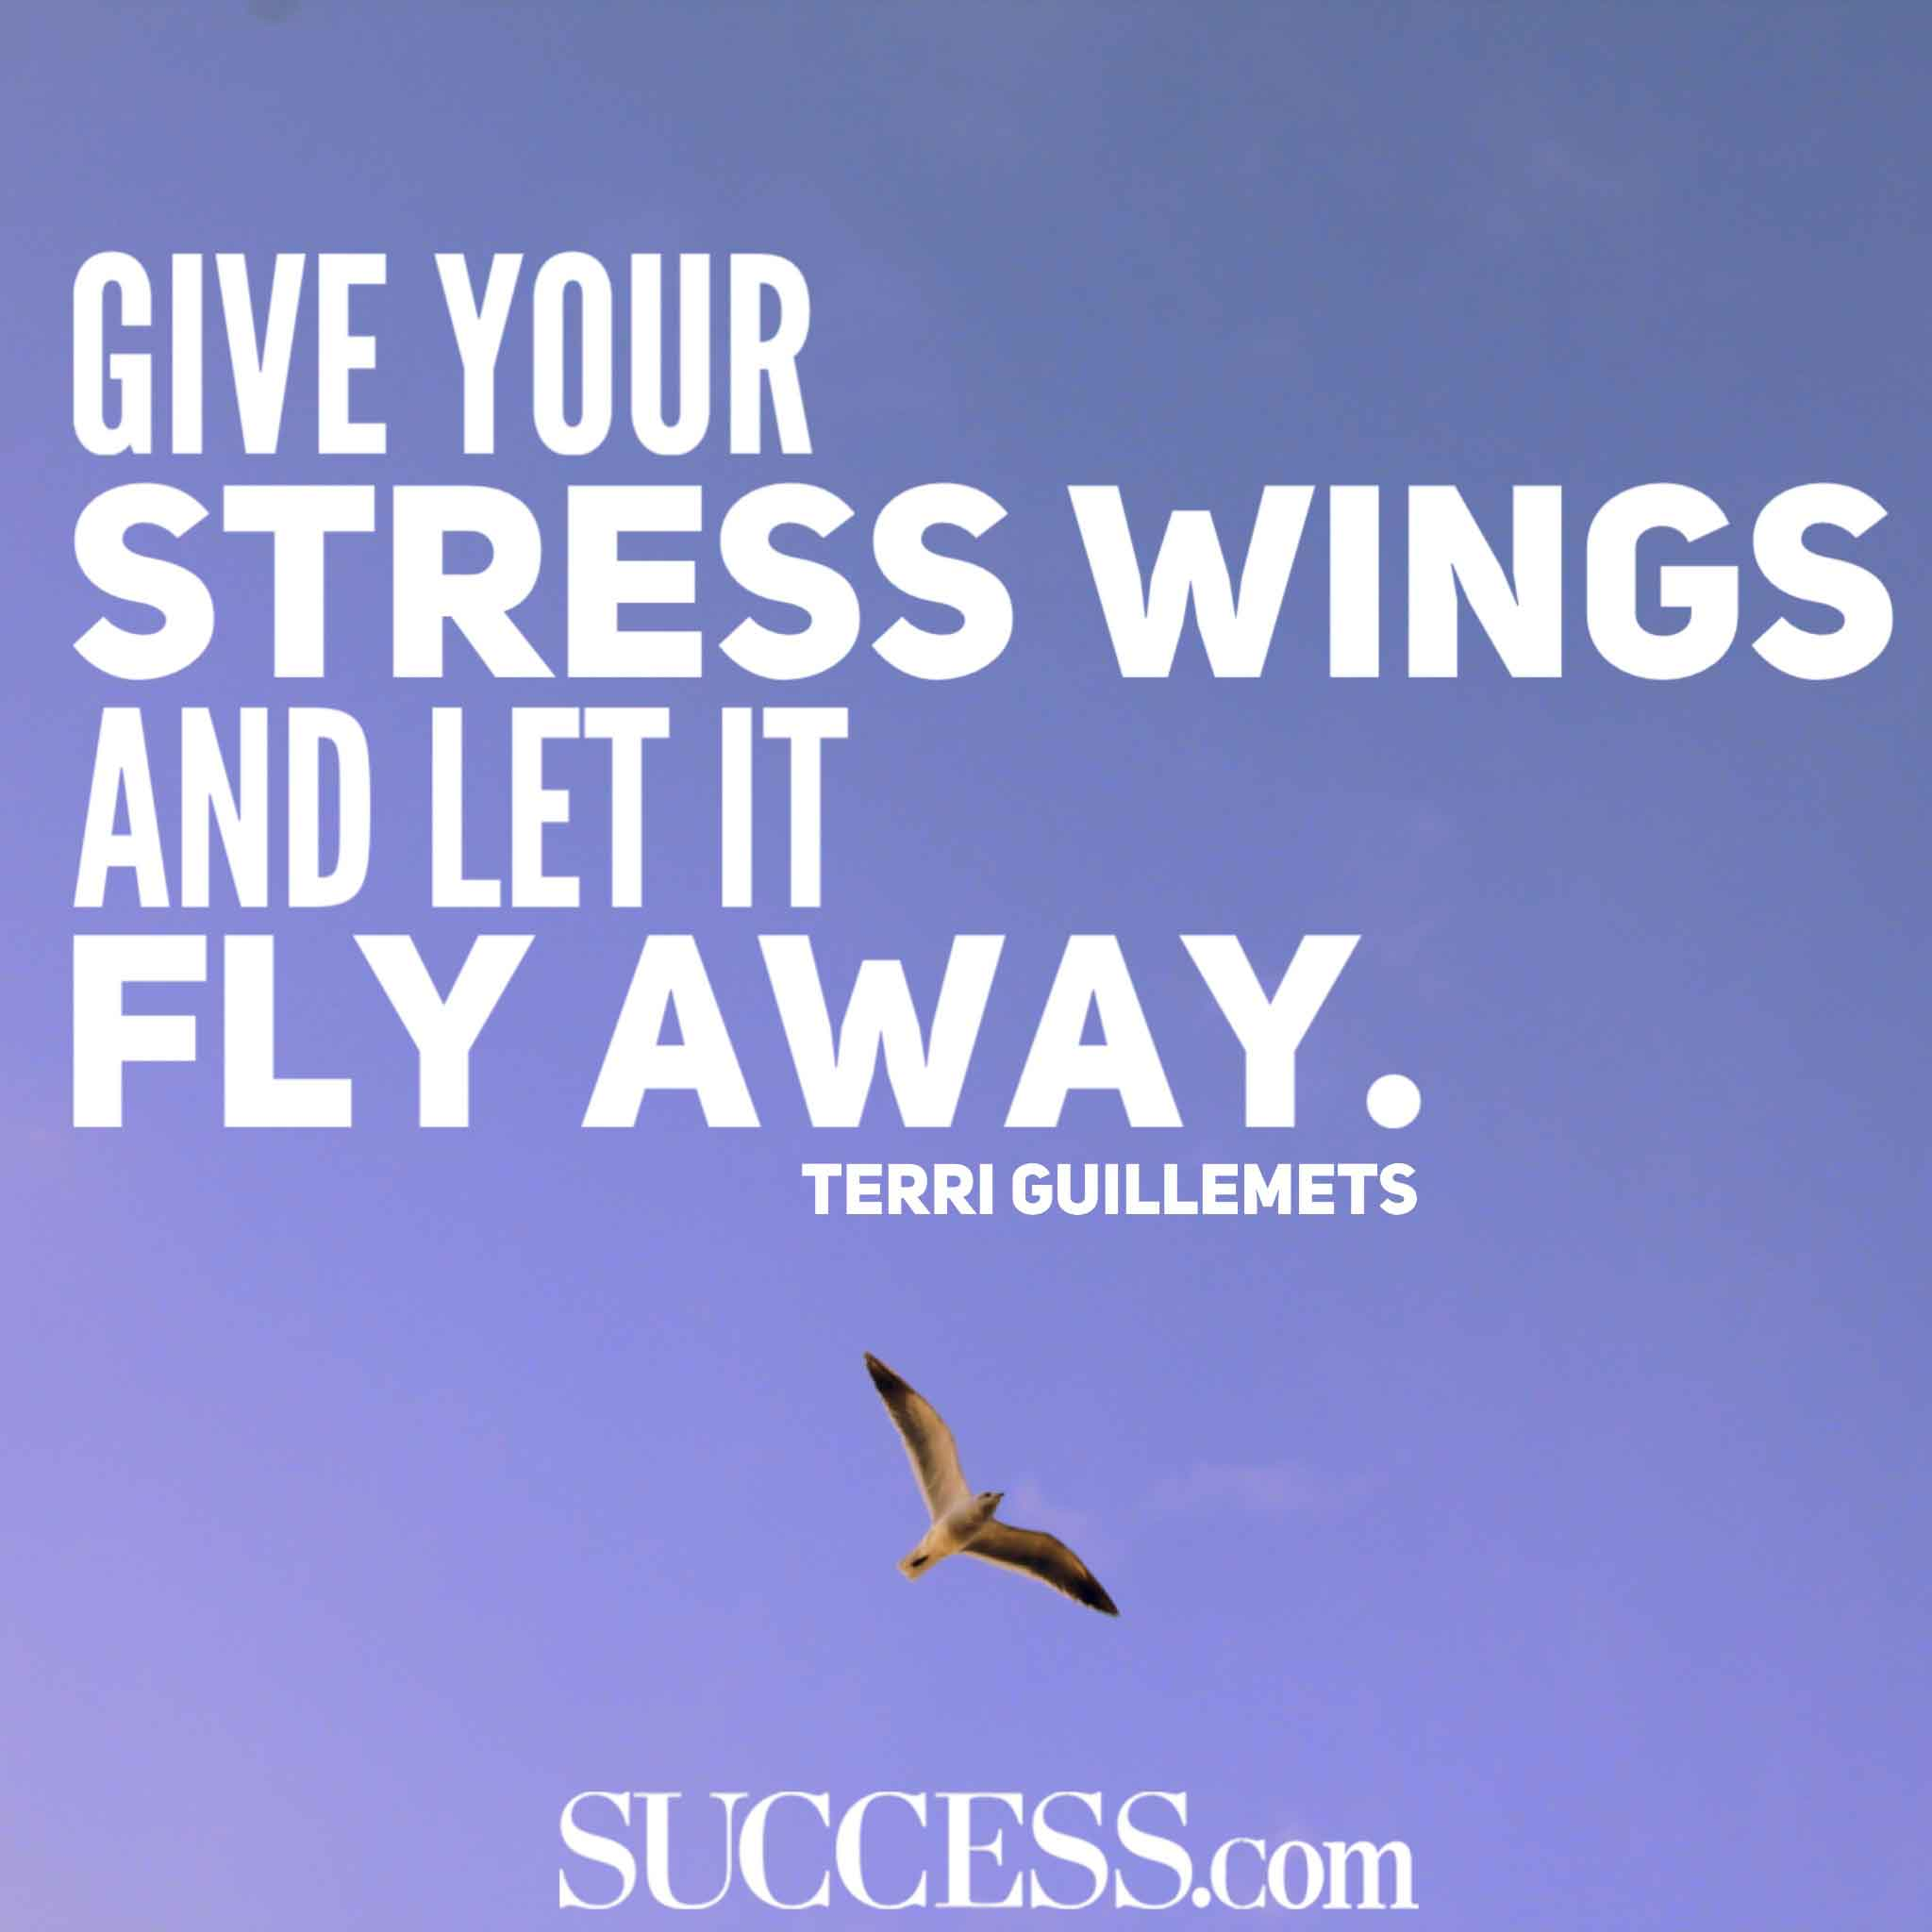 Inspirational Quotes About Stress 19 Calming Quotes to Help You Stress Less Inspirational Quotes About Stress